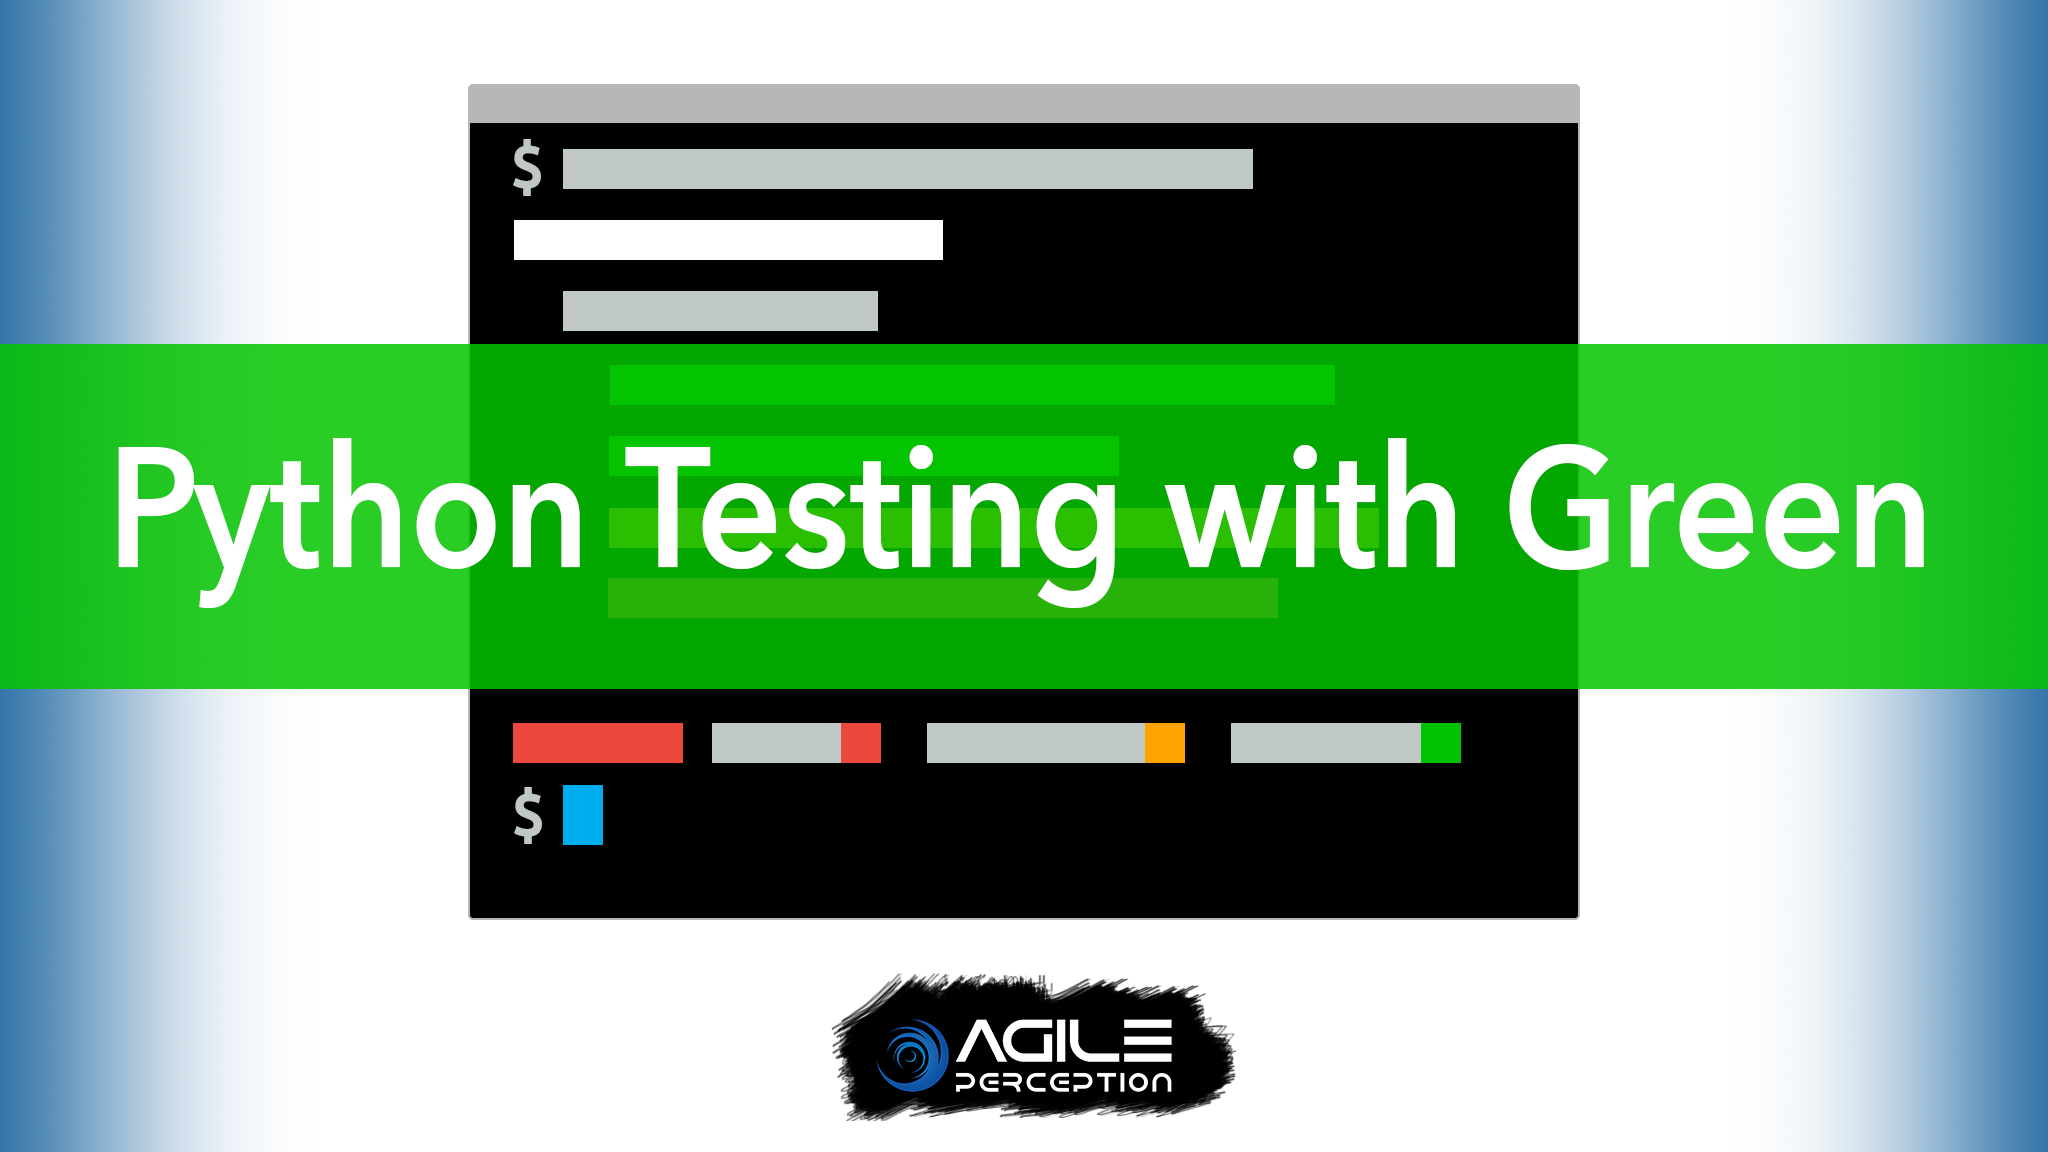 Python Testing with Green - Full Price